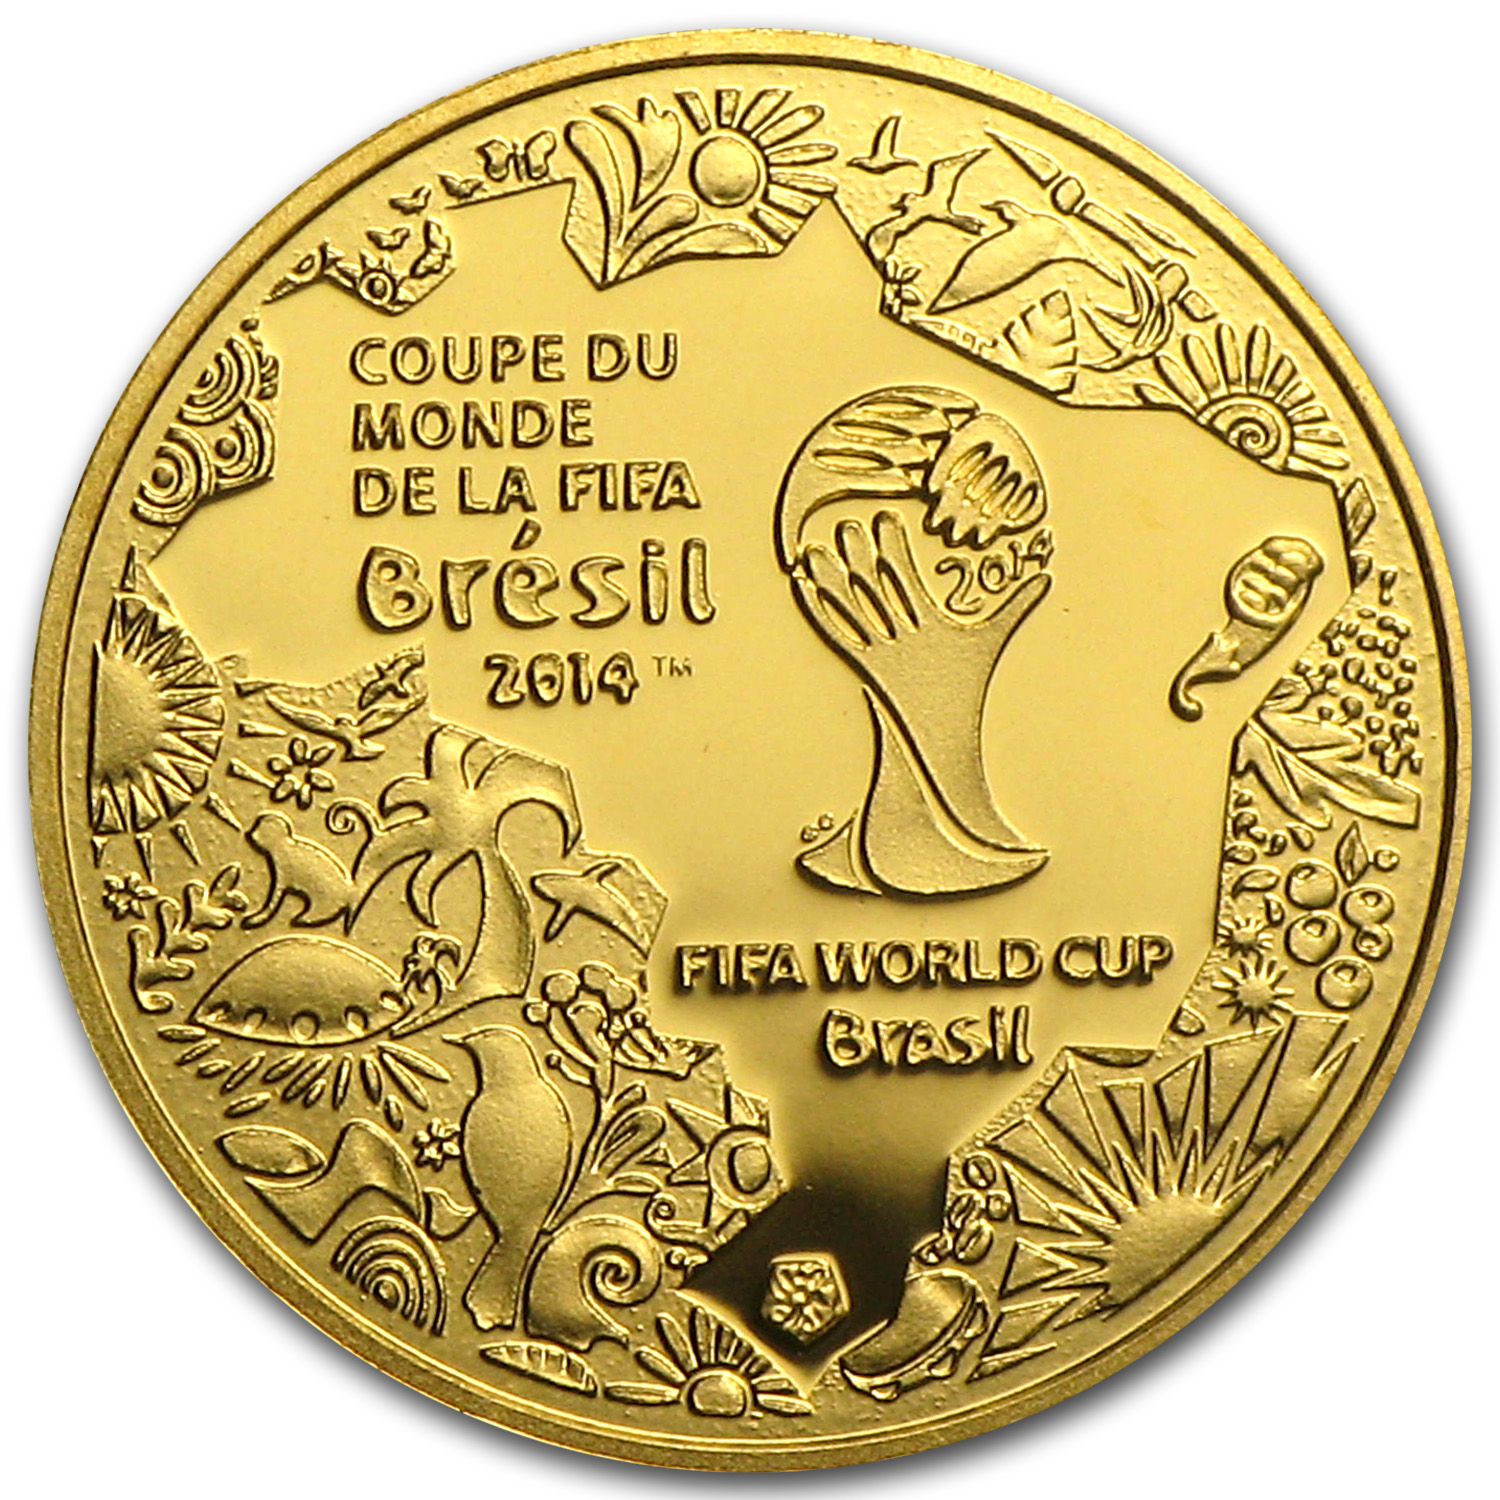 2014 France 1/2 Gram Proof Gold €5 FIFA World Cup